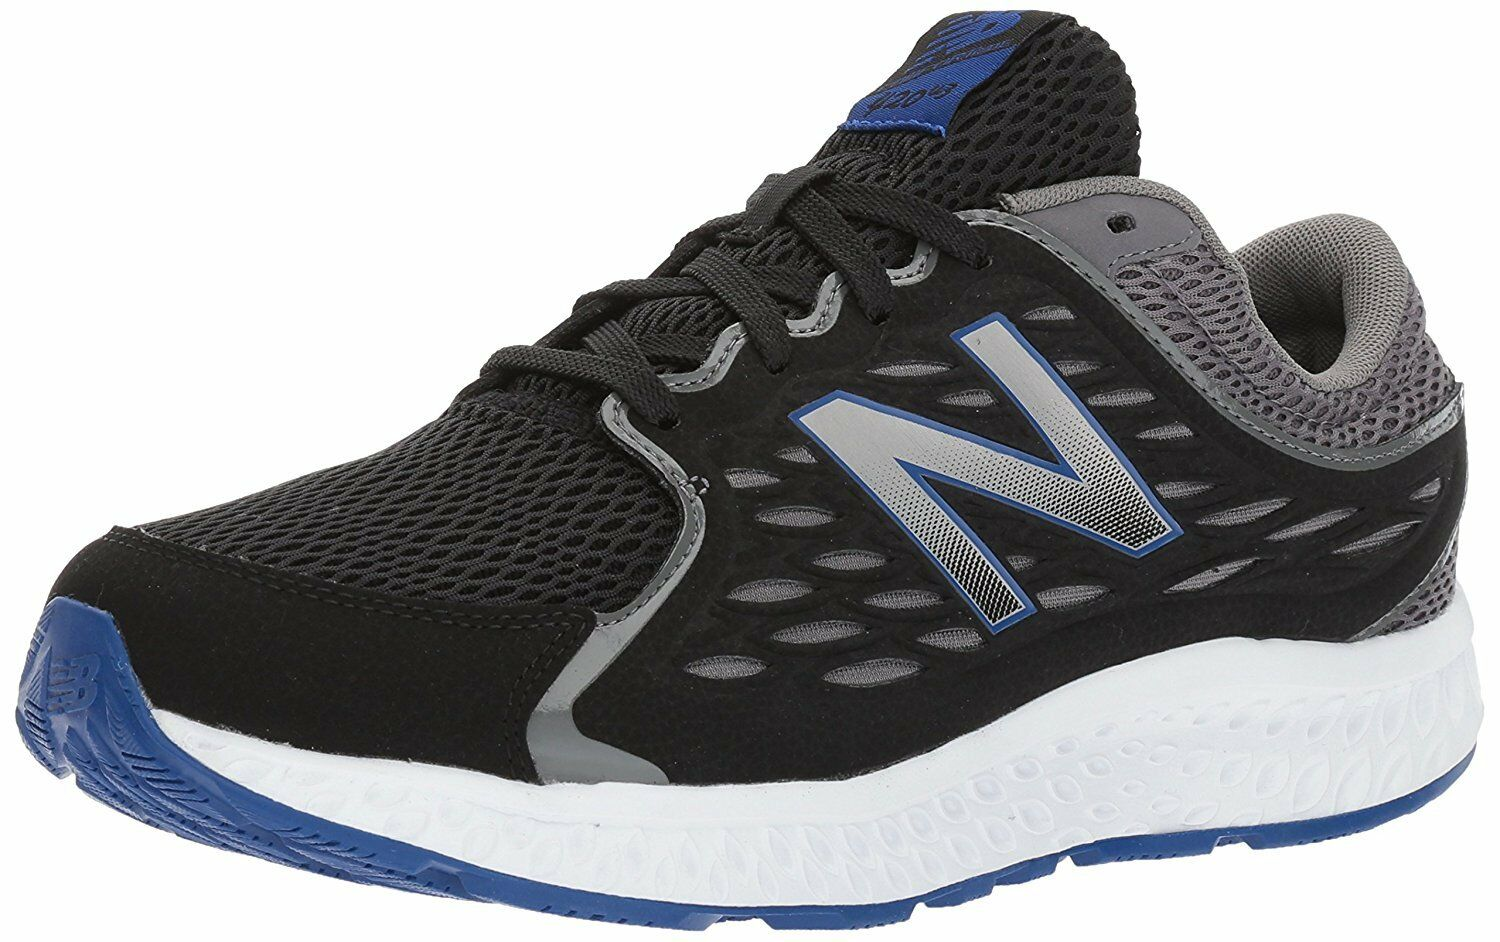 New Balance M420CG3 Width 4E Men's Black/Grey Running Shoes